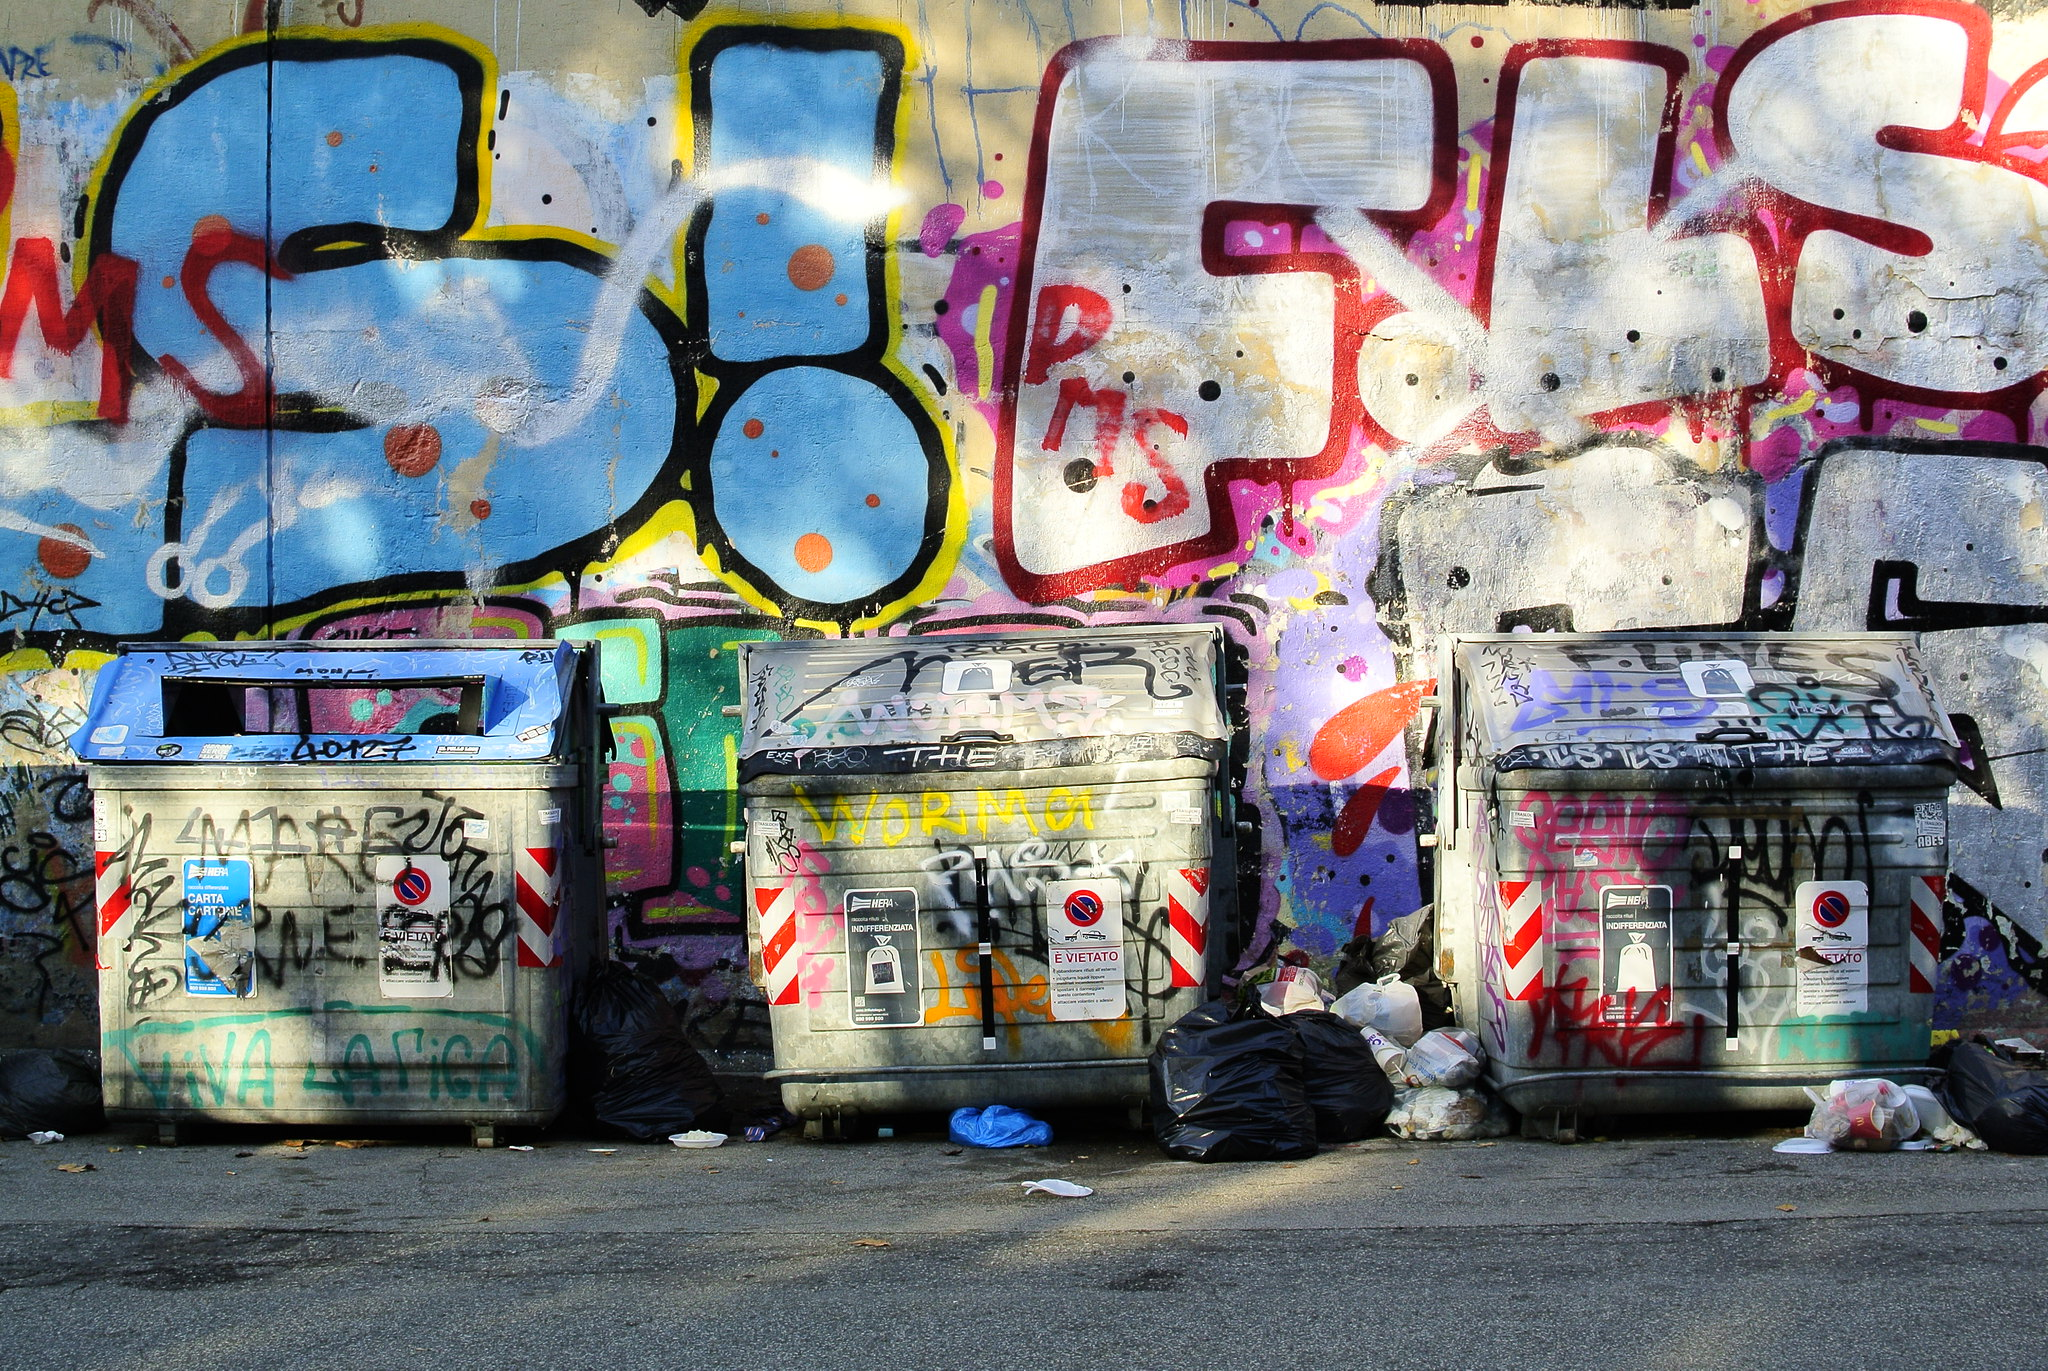 Dumpsters in a grafitti-covered alley.